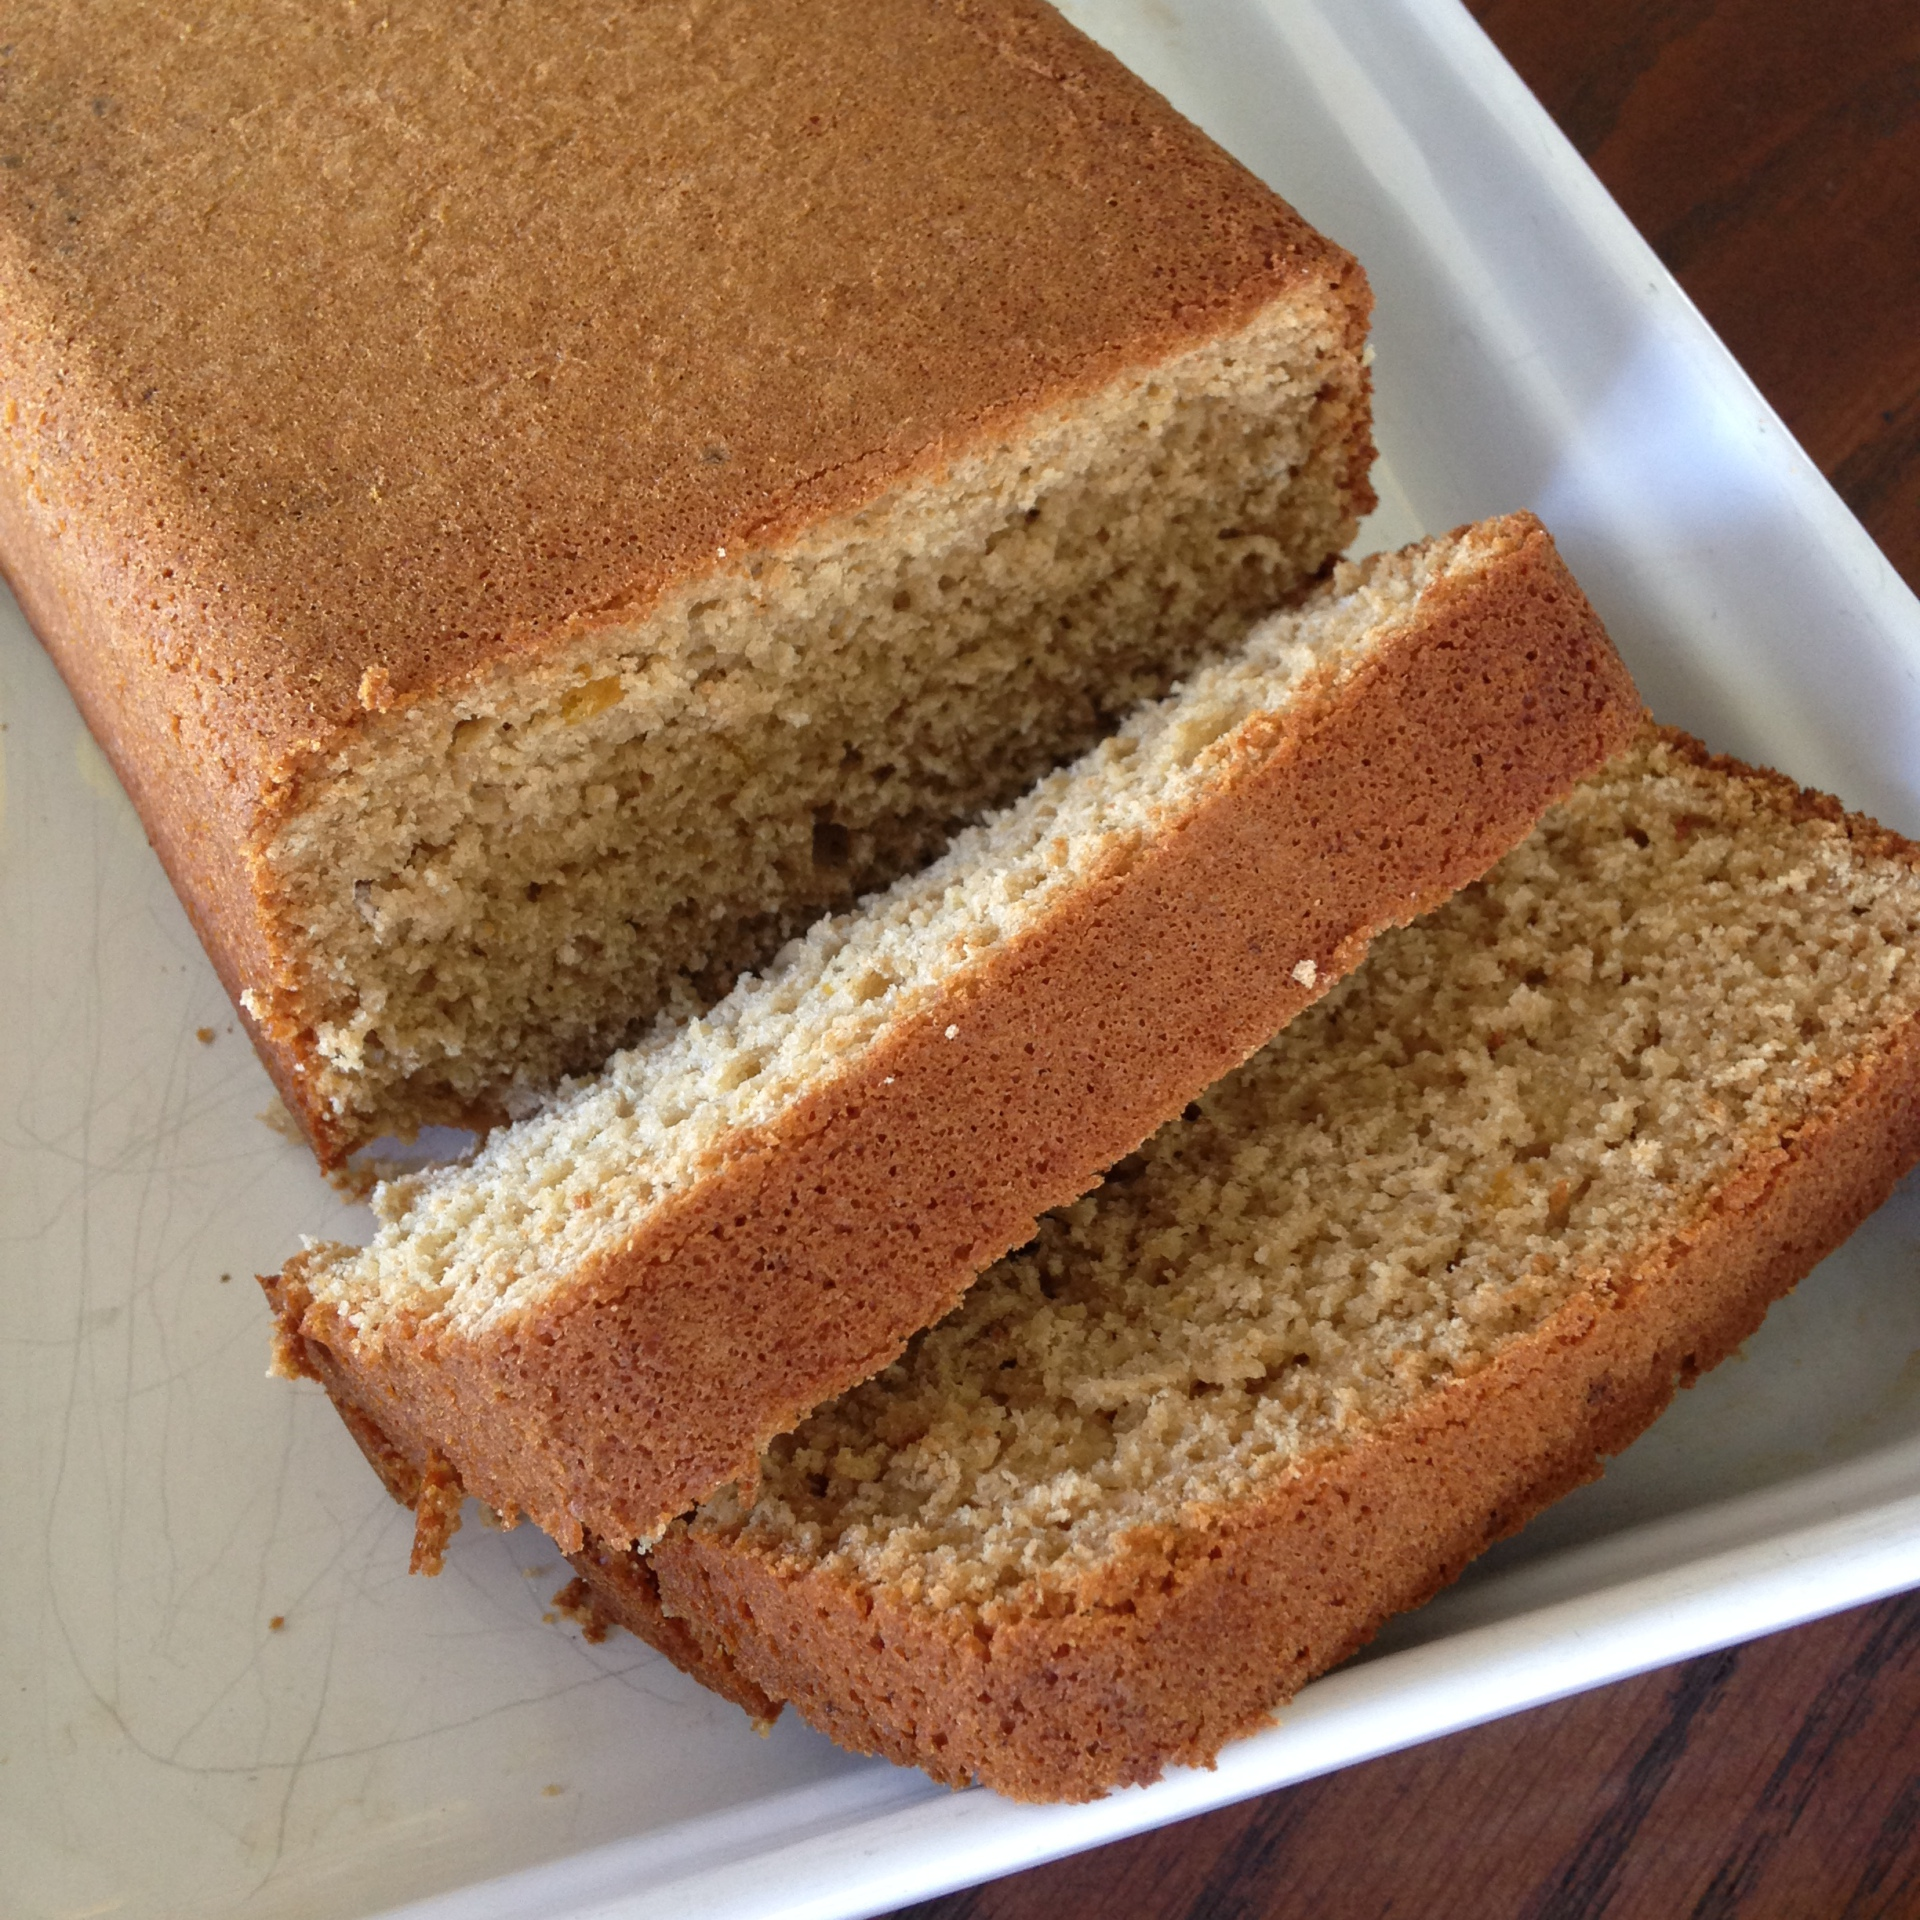 The Best Gluten-free Bread Ever!